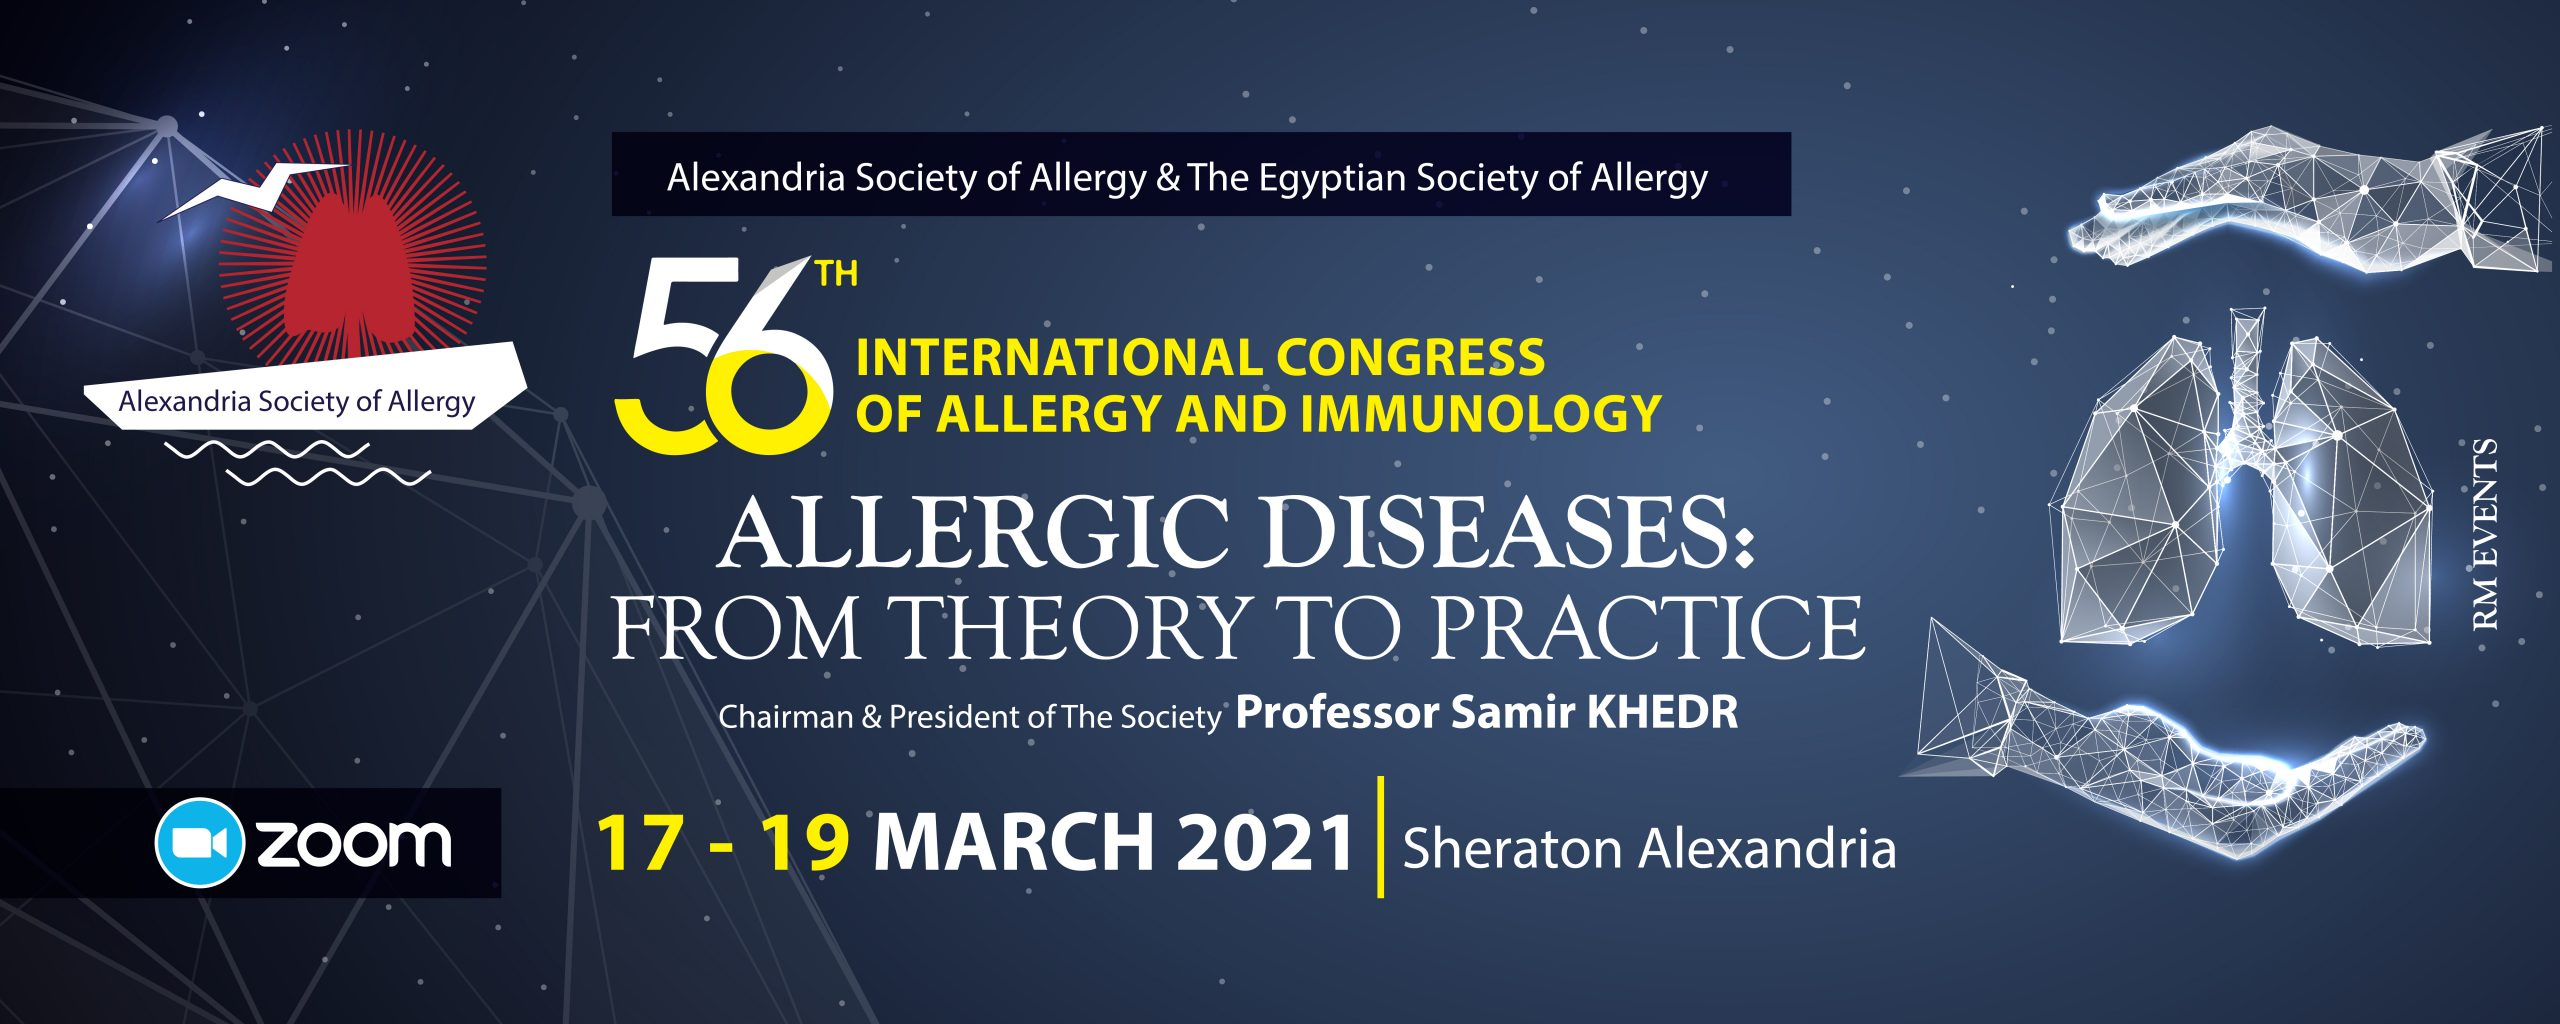 56th International Congress Of Allergy and Immunology